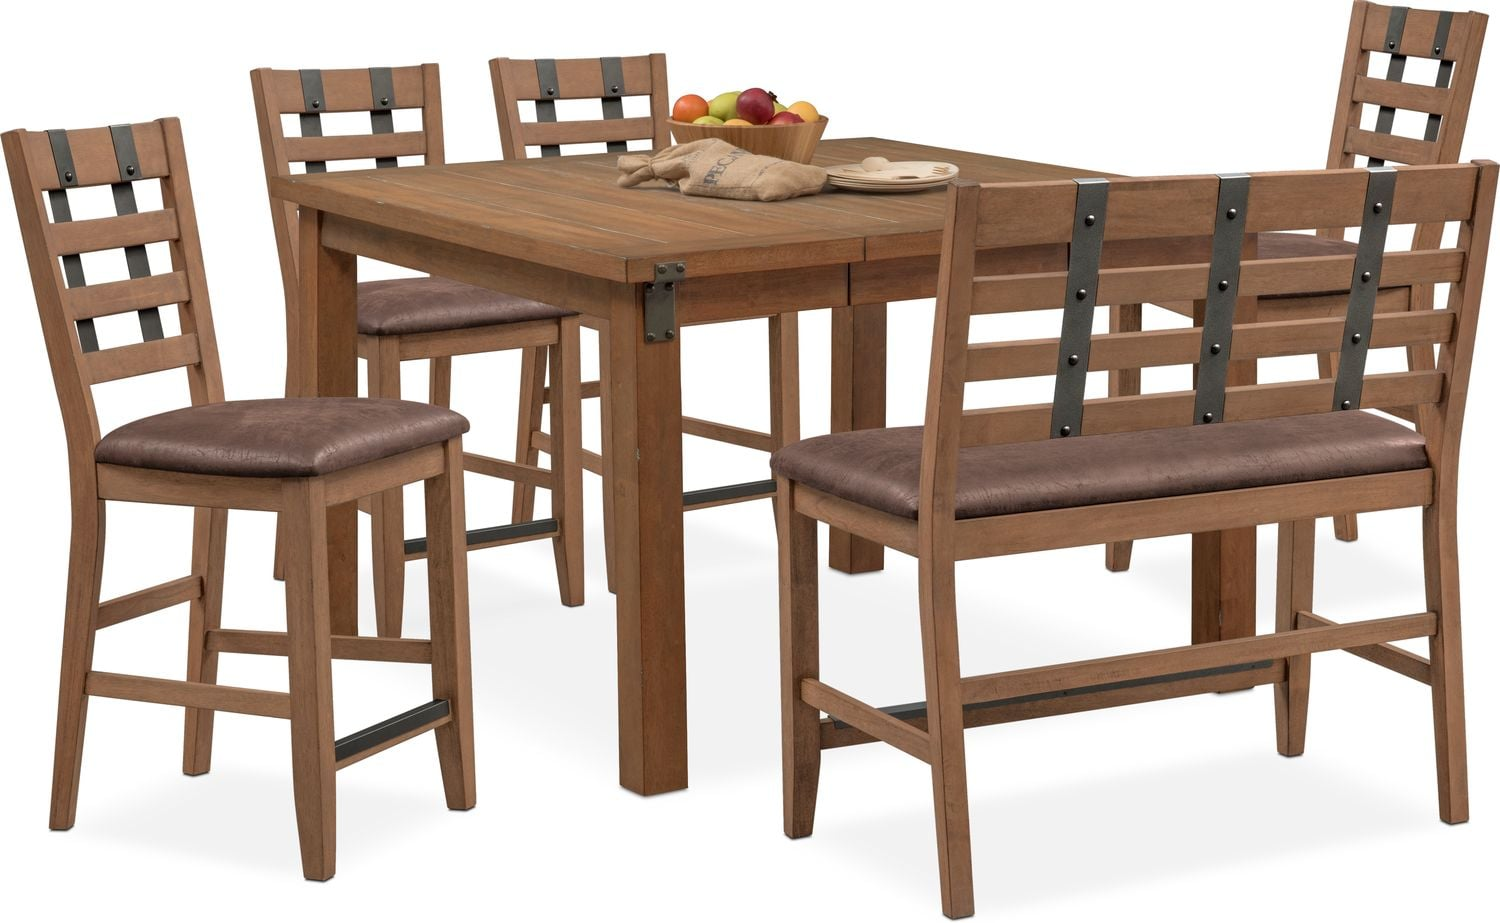 Hampton Counter-Height Dining Table, 4 Stools and Bench - Sandstone ...